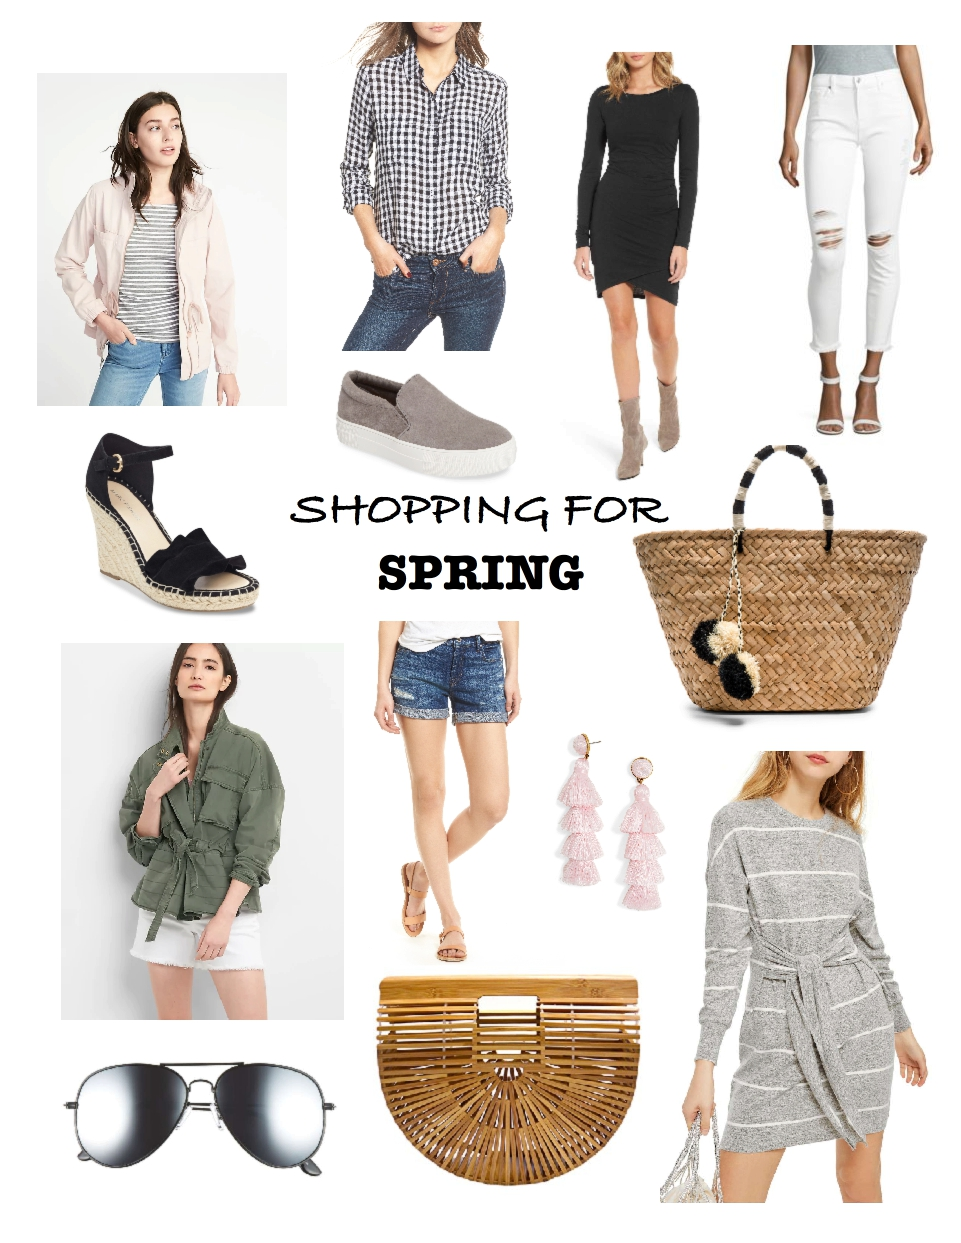 mom friendly spring outfits, spring 2018 fashion trends, affordable spring fashion, casual and versatile spring wardrobe essentials